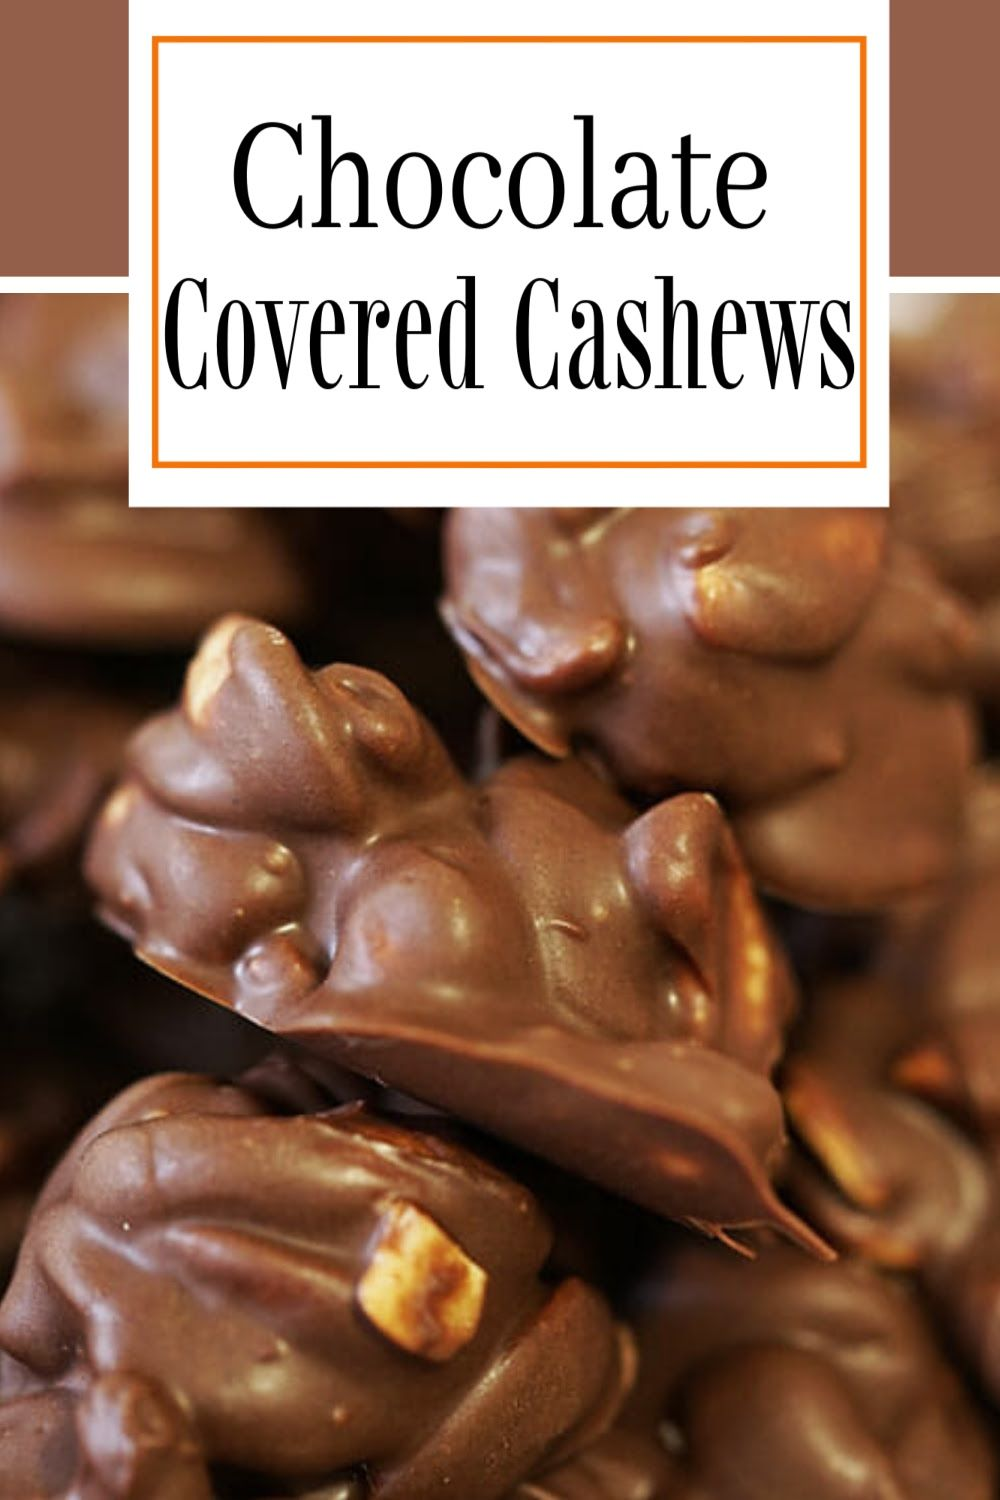 Easy Chocolate Covered Cashews Recipe Recipe In 2021 Chocolate Covered Cashews Recipe Cashew Recipes Chocolate Covered Nuts